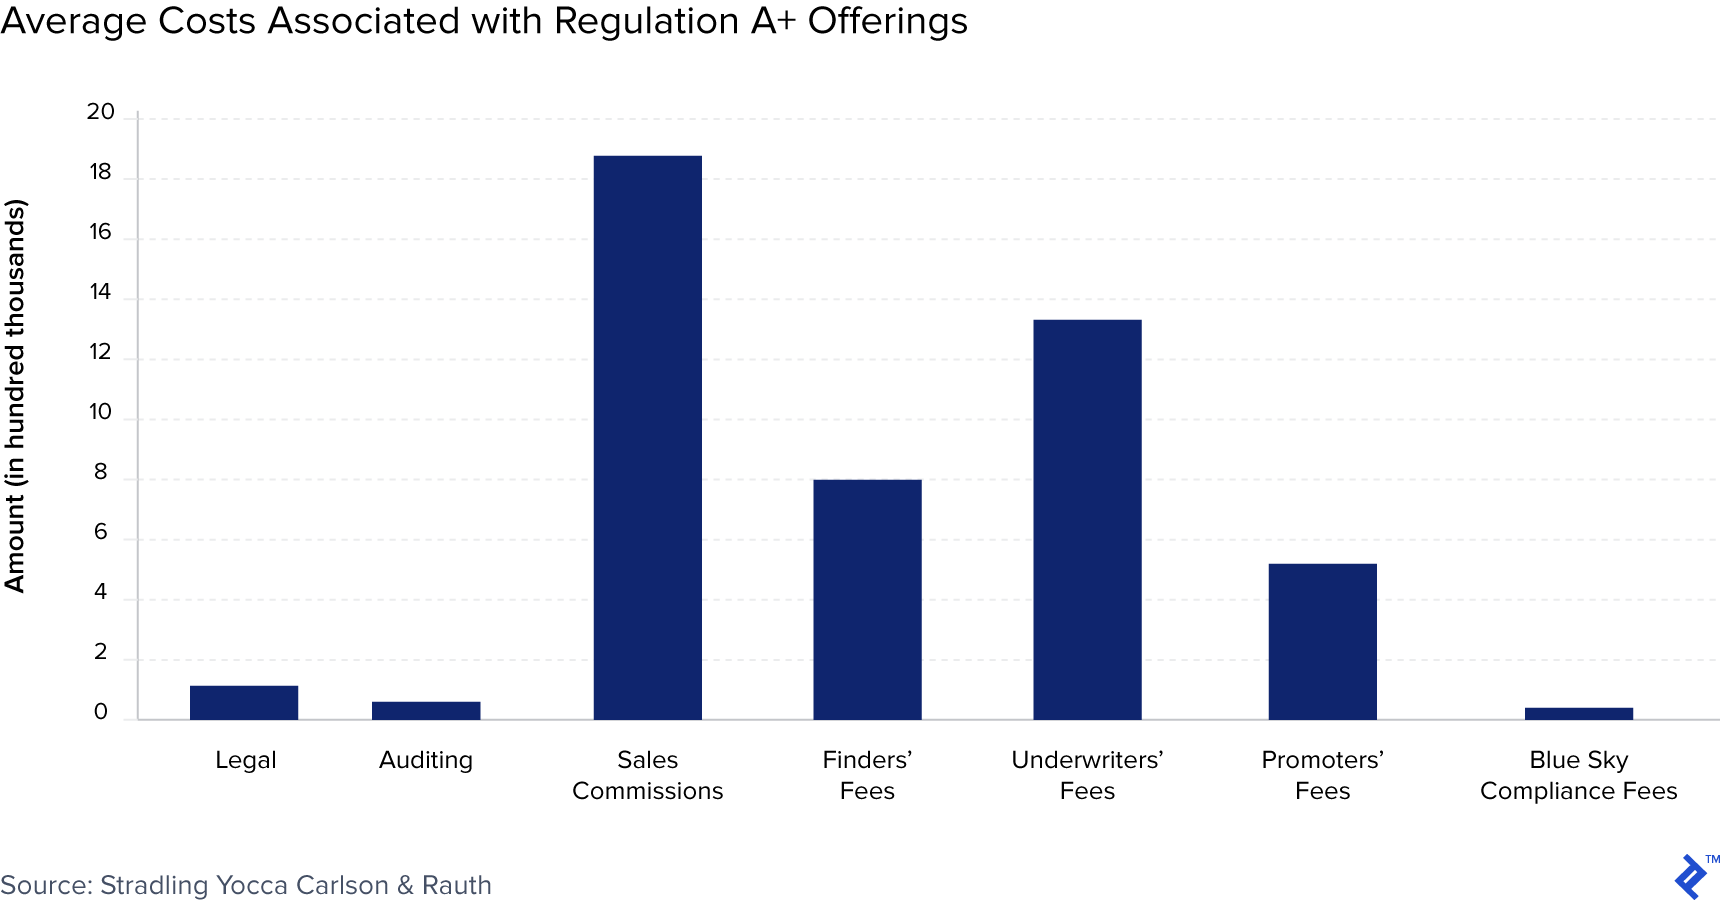 Chart showing average costs associated with regulation A-plus offerings